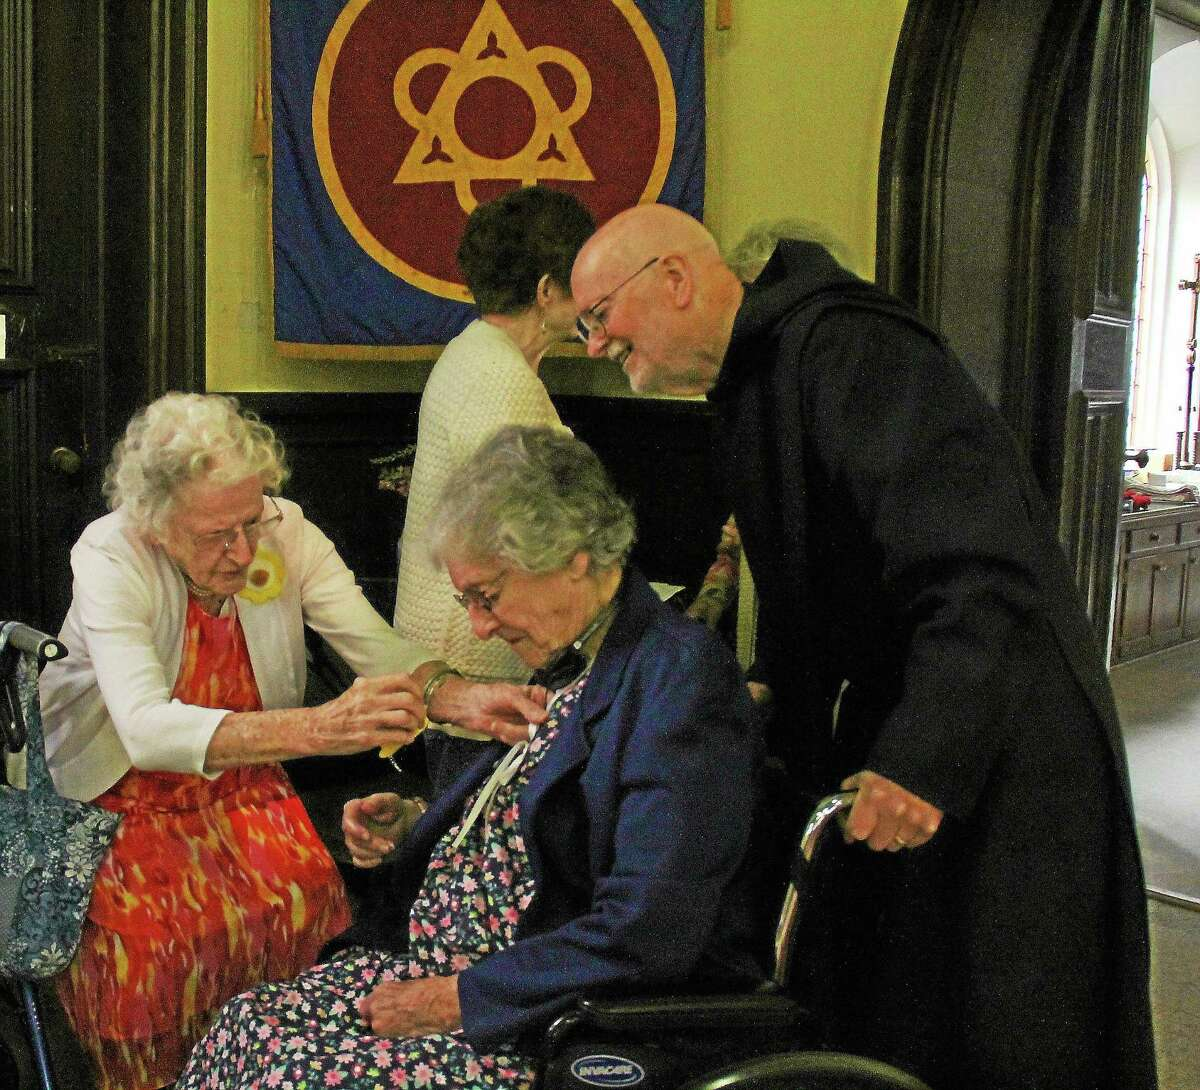 Last year's Mass for elderly shut-ins at the Church of Holy Trinity in Middletown included a hands-on blessing, lunch, music and fresh strawberry shortcake.